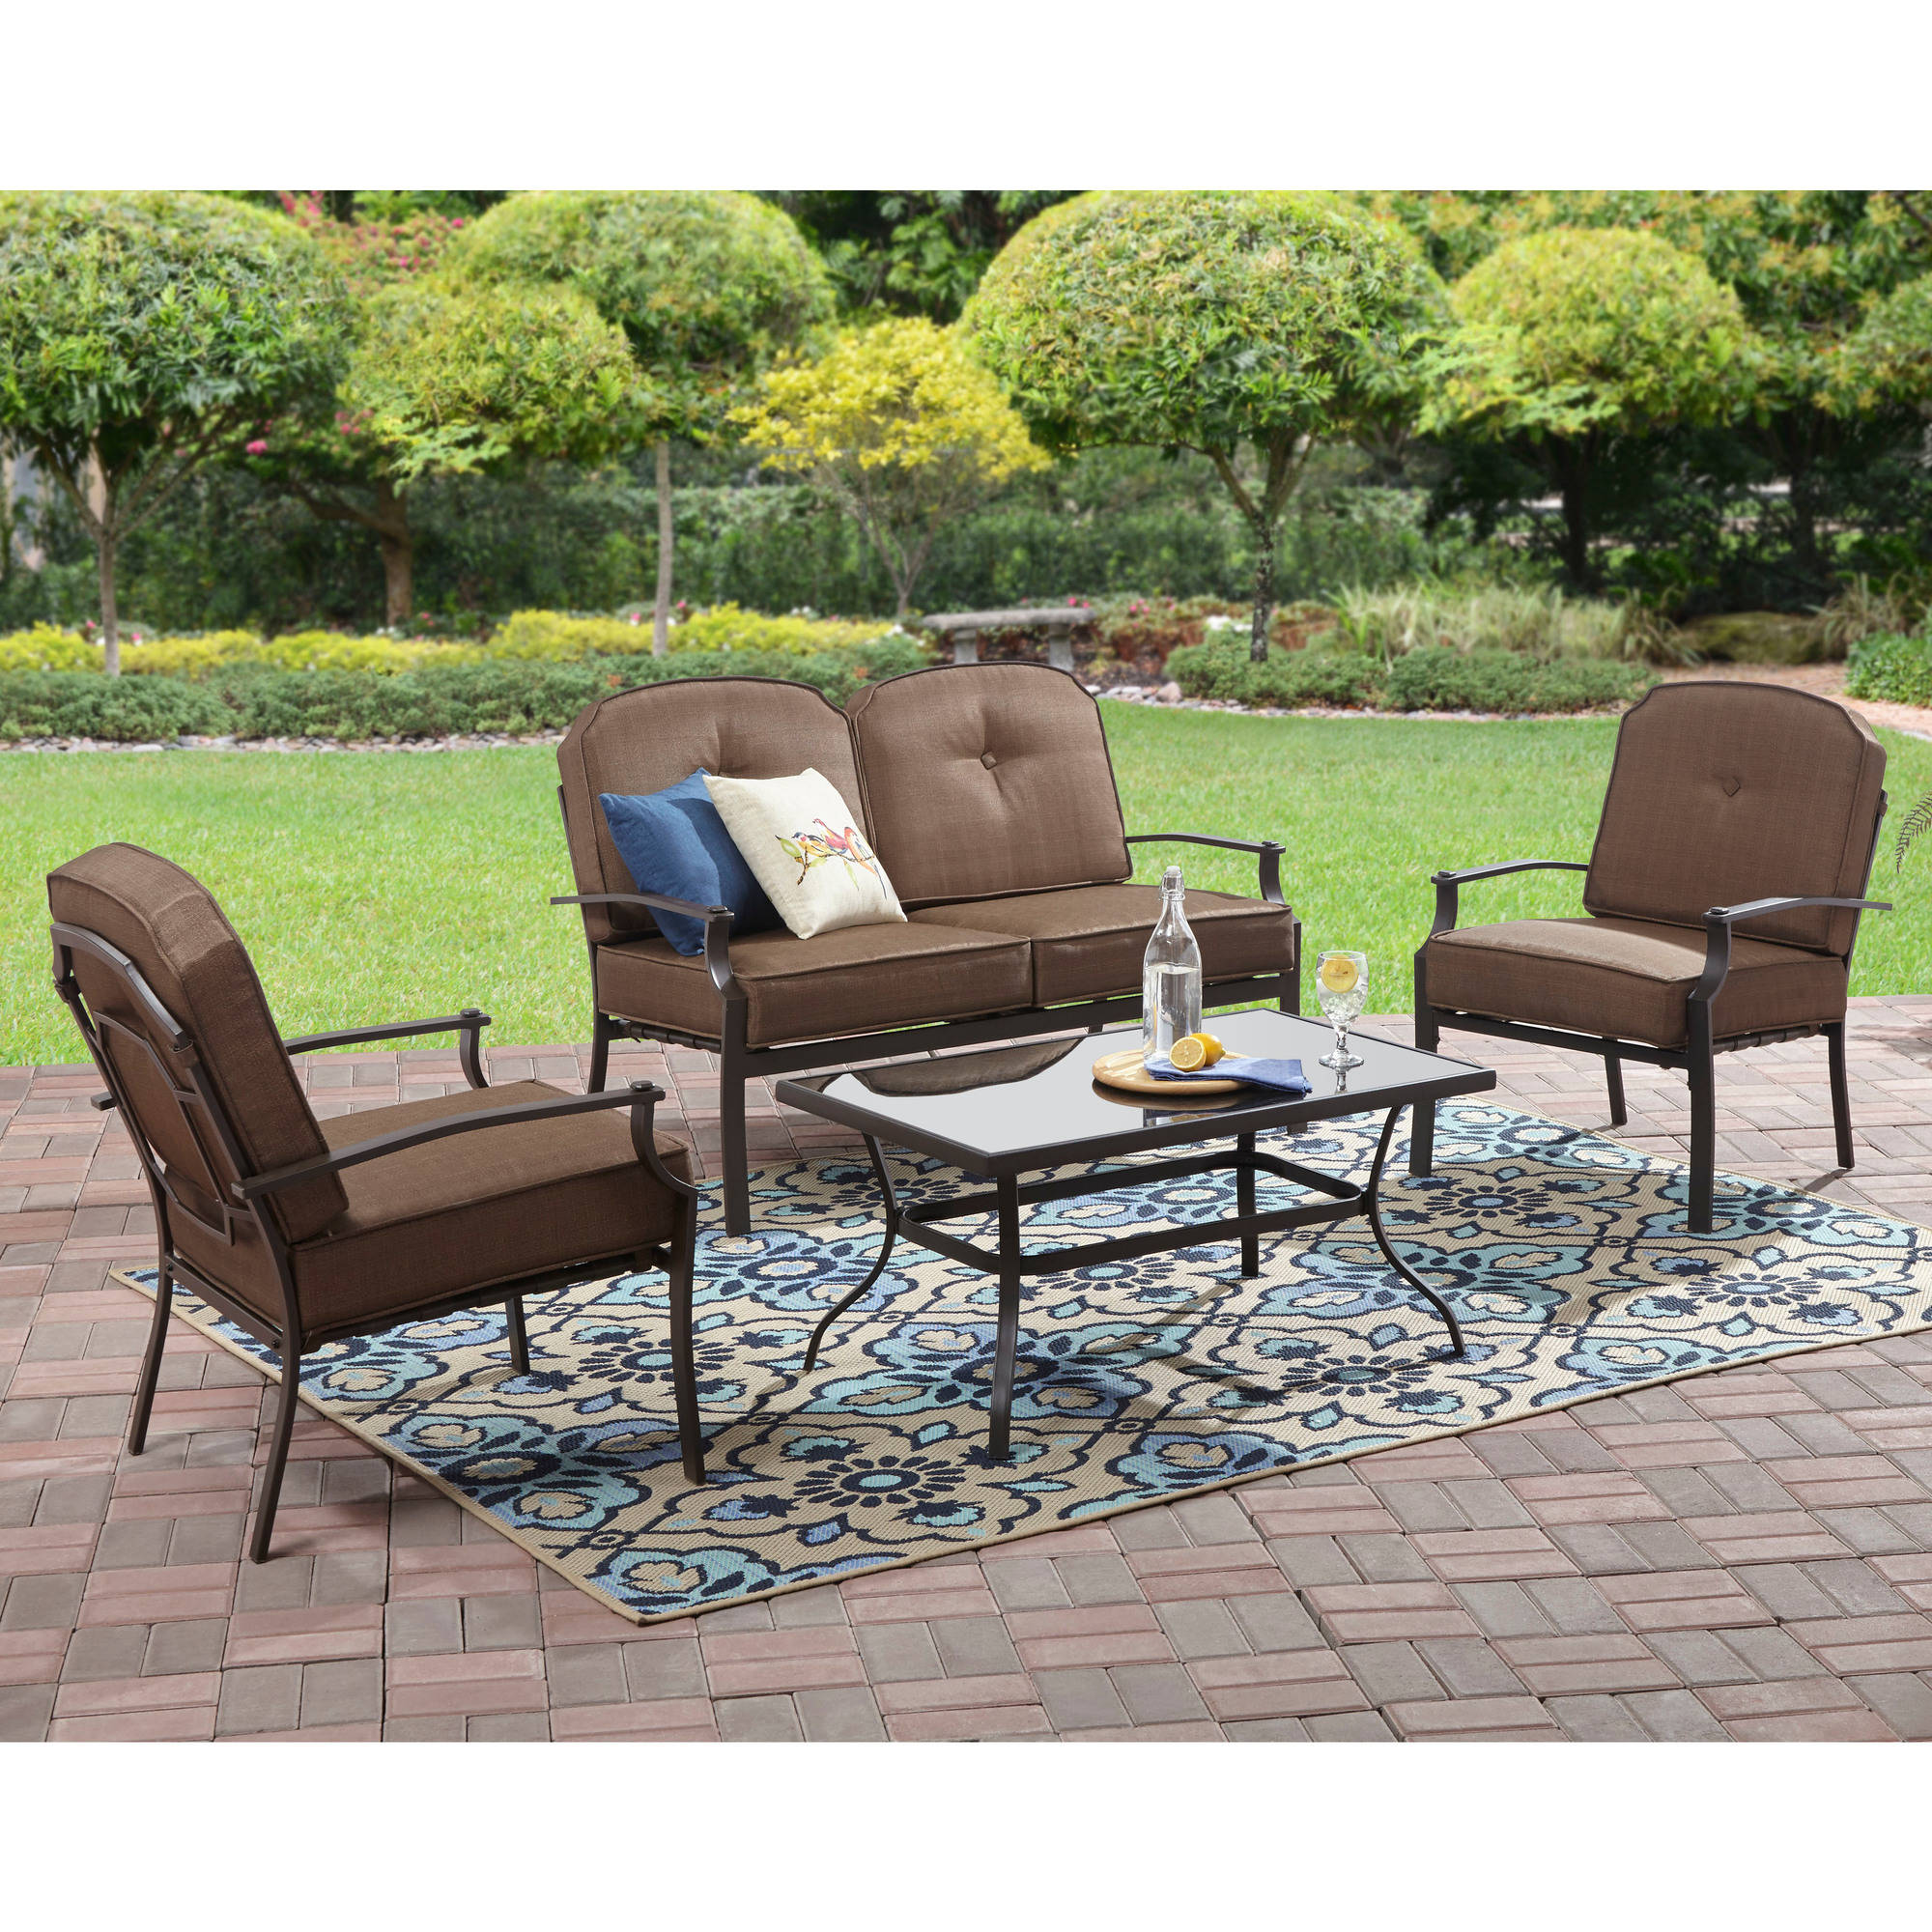 mainstays spring creek 5 piece patio dining set seats 4 walmart com rh walmart com walmart patio table and chair sets walmart patio table and chairs